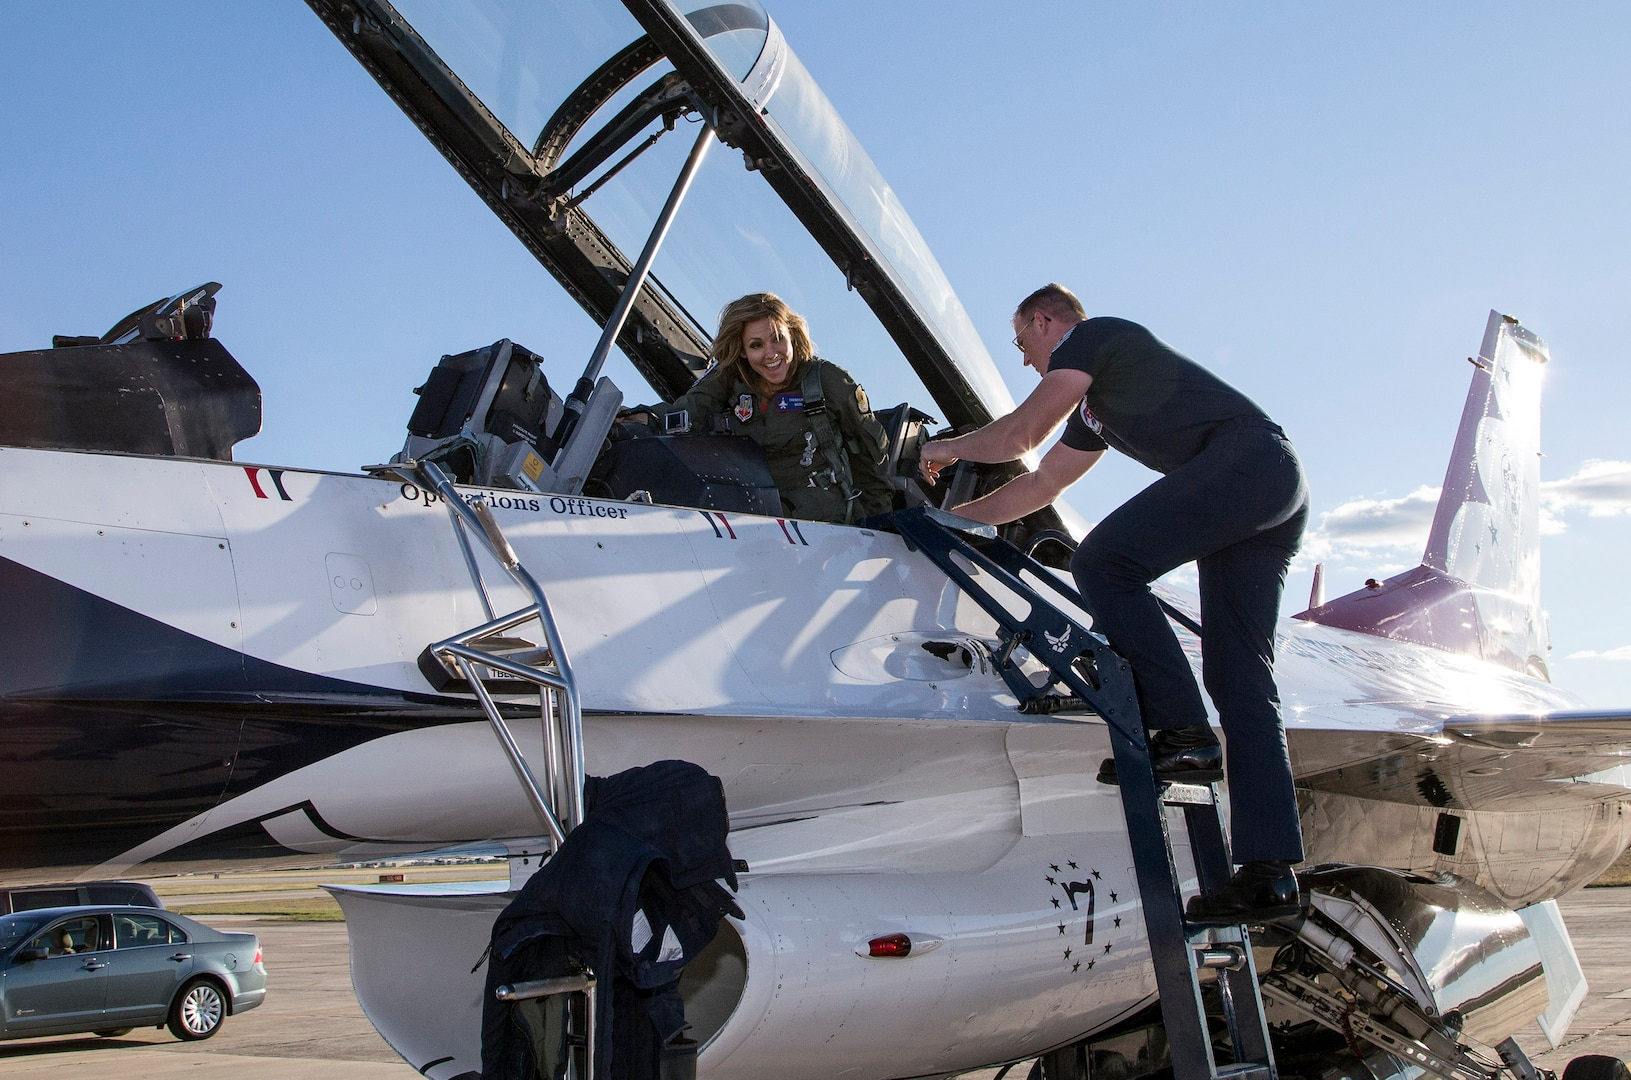 """Tech Sgt. Jacob Worthen, U.S. Air Force Air Demonstration Squadron """"Thunderbirds"""" avionics technician, assist Delaine Mathieu, News 4 San Antonio co-anchor, exit an F-16 aircraft Oct. 26, 2015 at Joint Base San Antonio-Randolph, Texas. The Thunderbirds are performing in the 2015 Air Show and Open House to be held at JBSA-Randolph Oct. 31 and Nov. 1. (U.S. Air Force photo by Johnny Saldivar/Released)"""